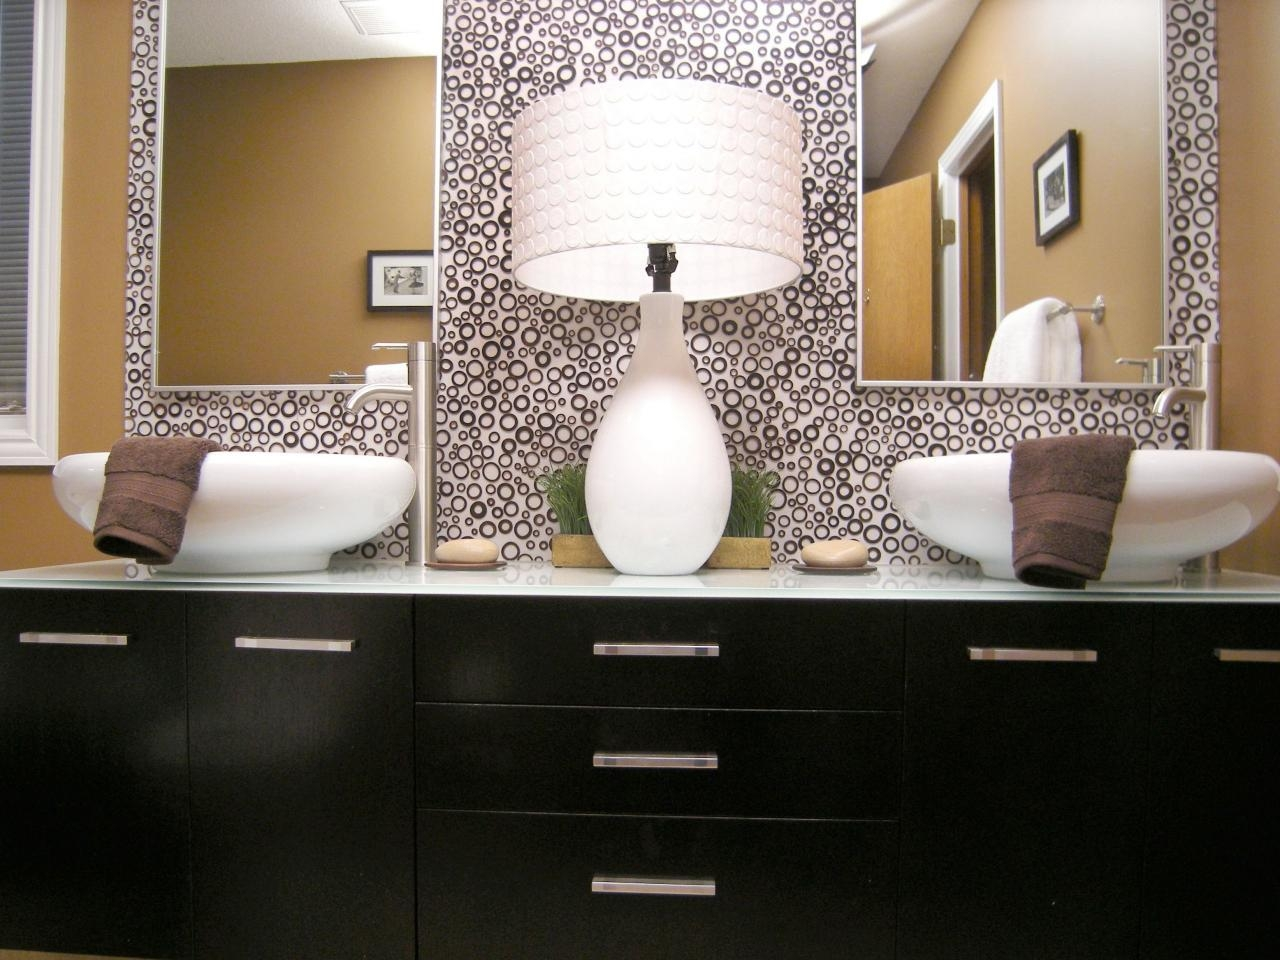 Bathroom Vanity Mirrors | Hgtv For Double Vanity Bathroom Mirrors (Image 8 of 20)